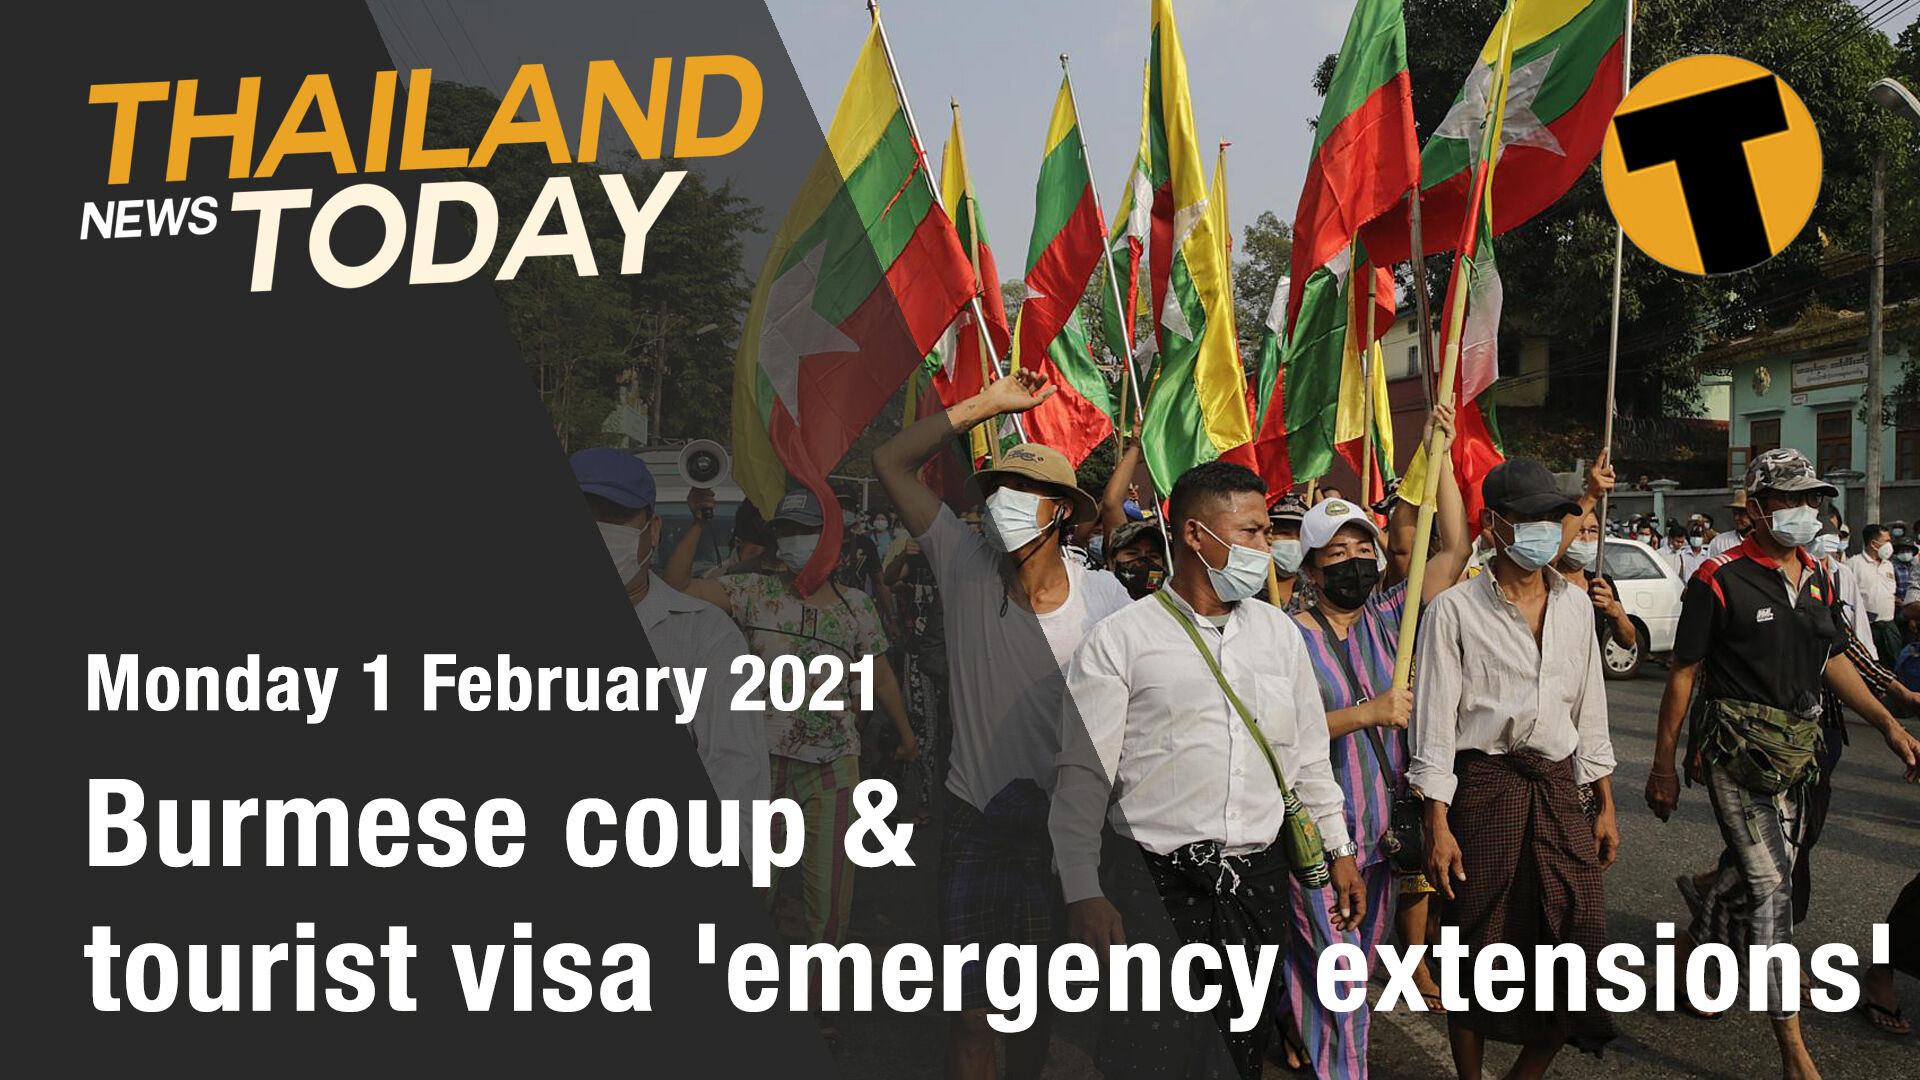 Thailand News Today | Burmese coup & tourist visa 'emergency extensions' | February 1 | The Thaiger